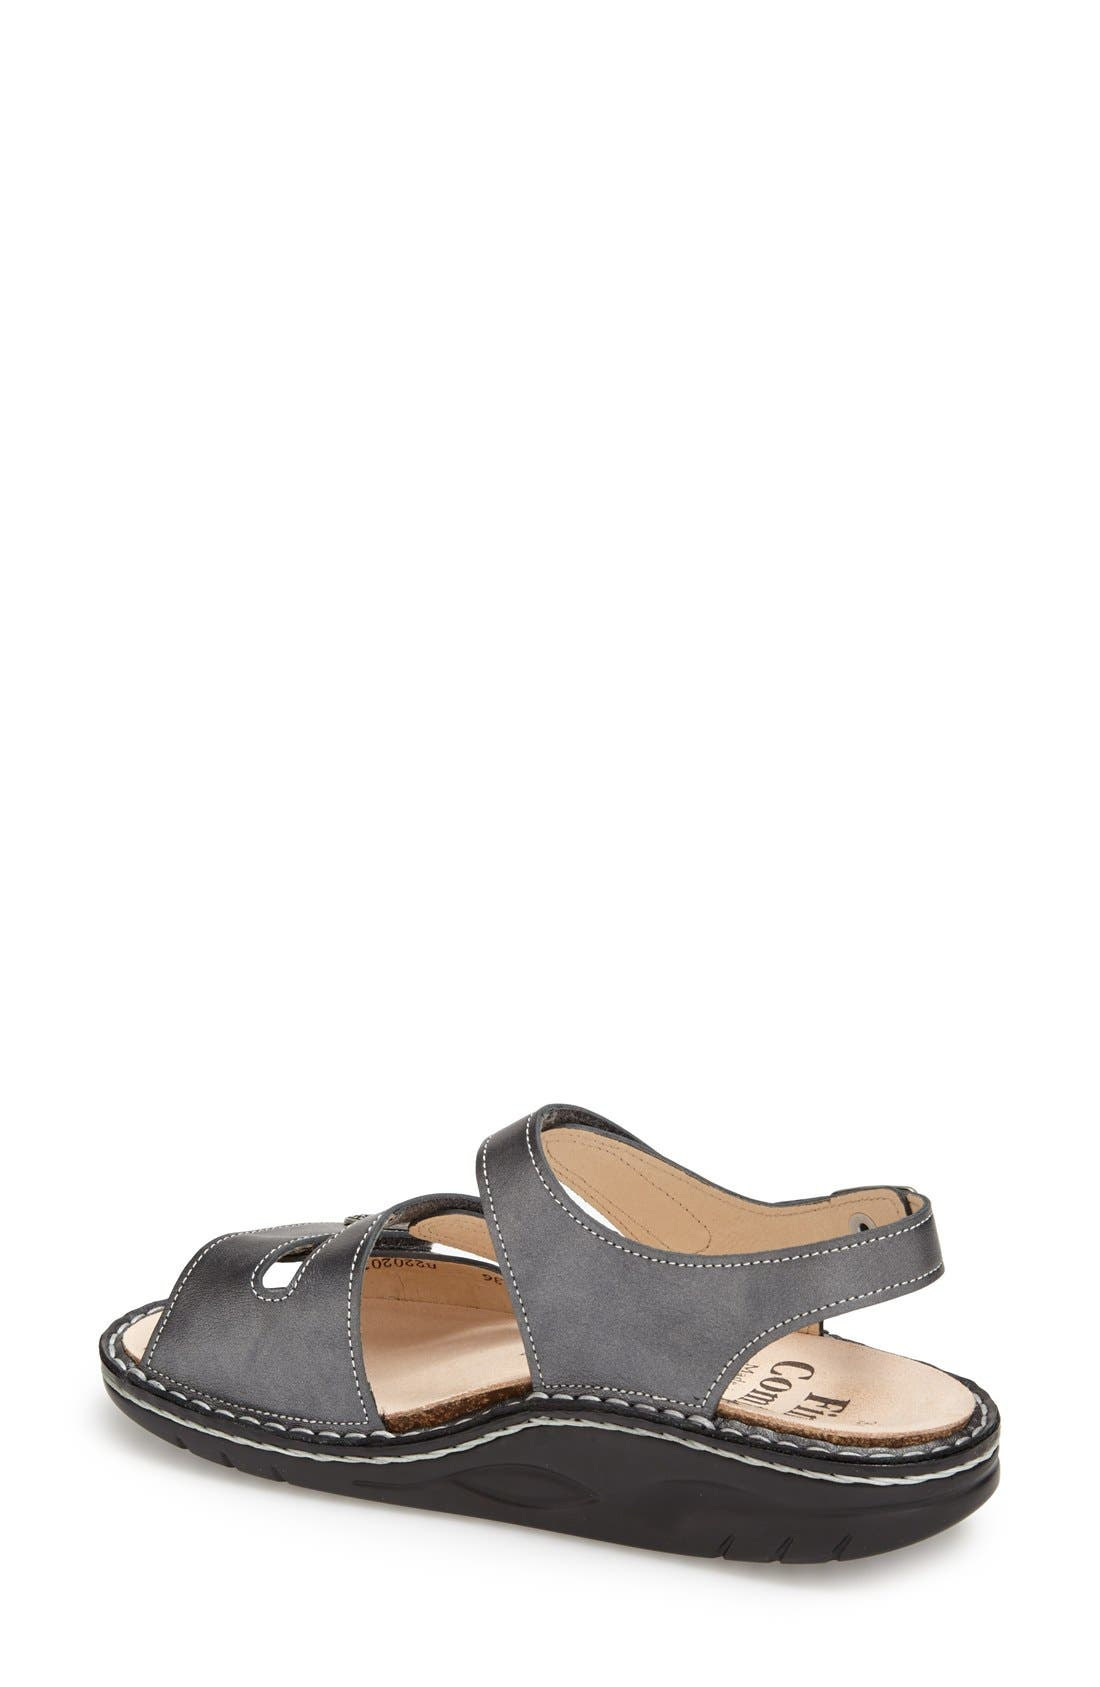 Alternate Image 2  - Finn Comfort 'Tiberias' Leather Sandal (Women)